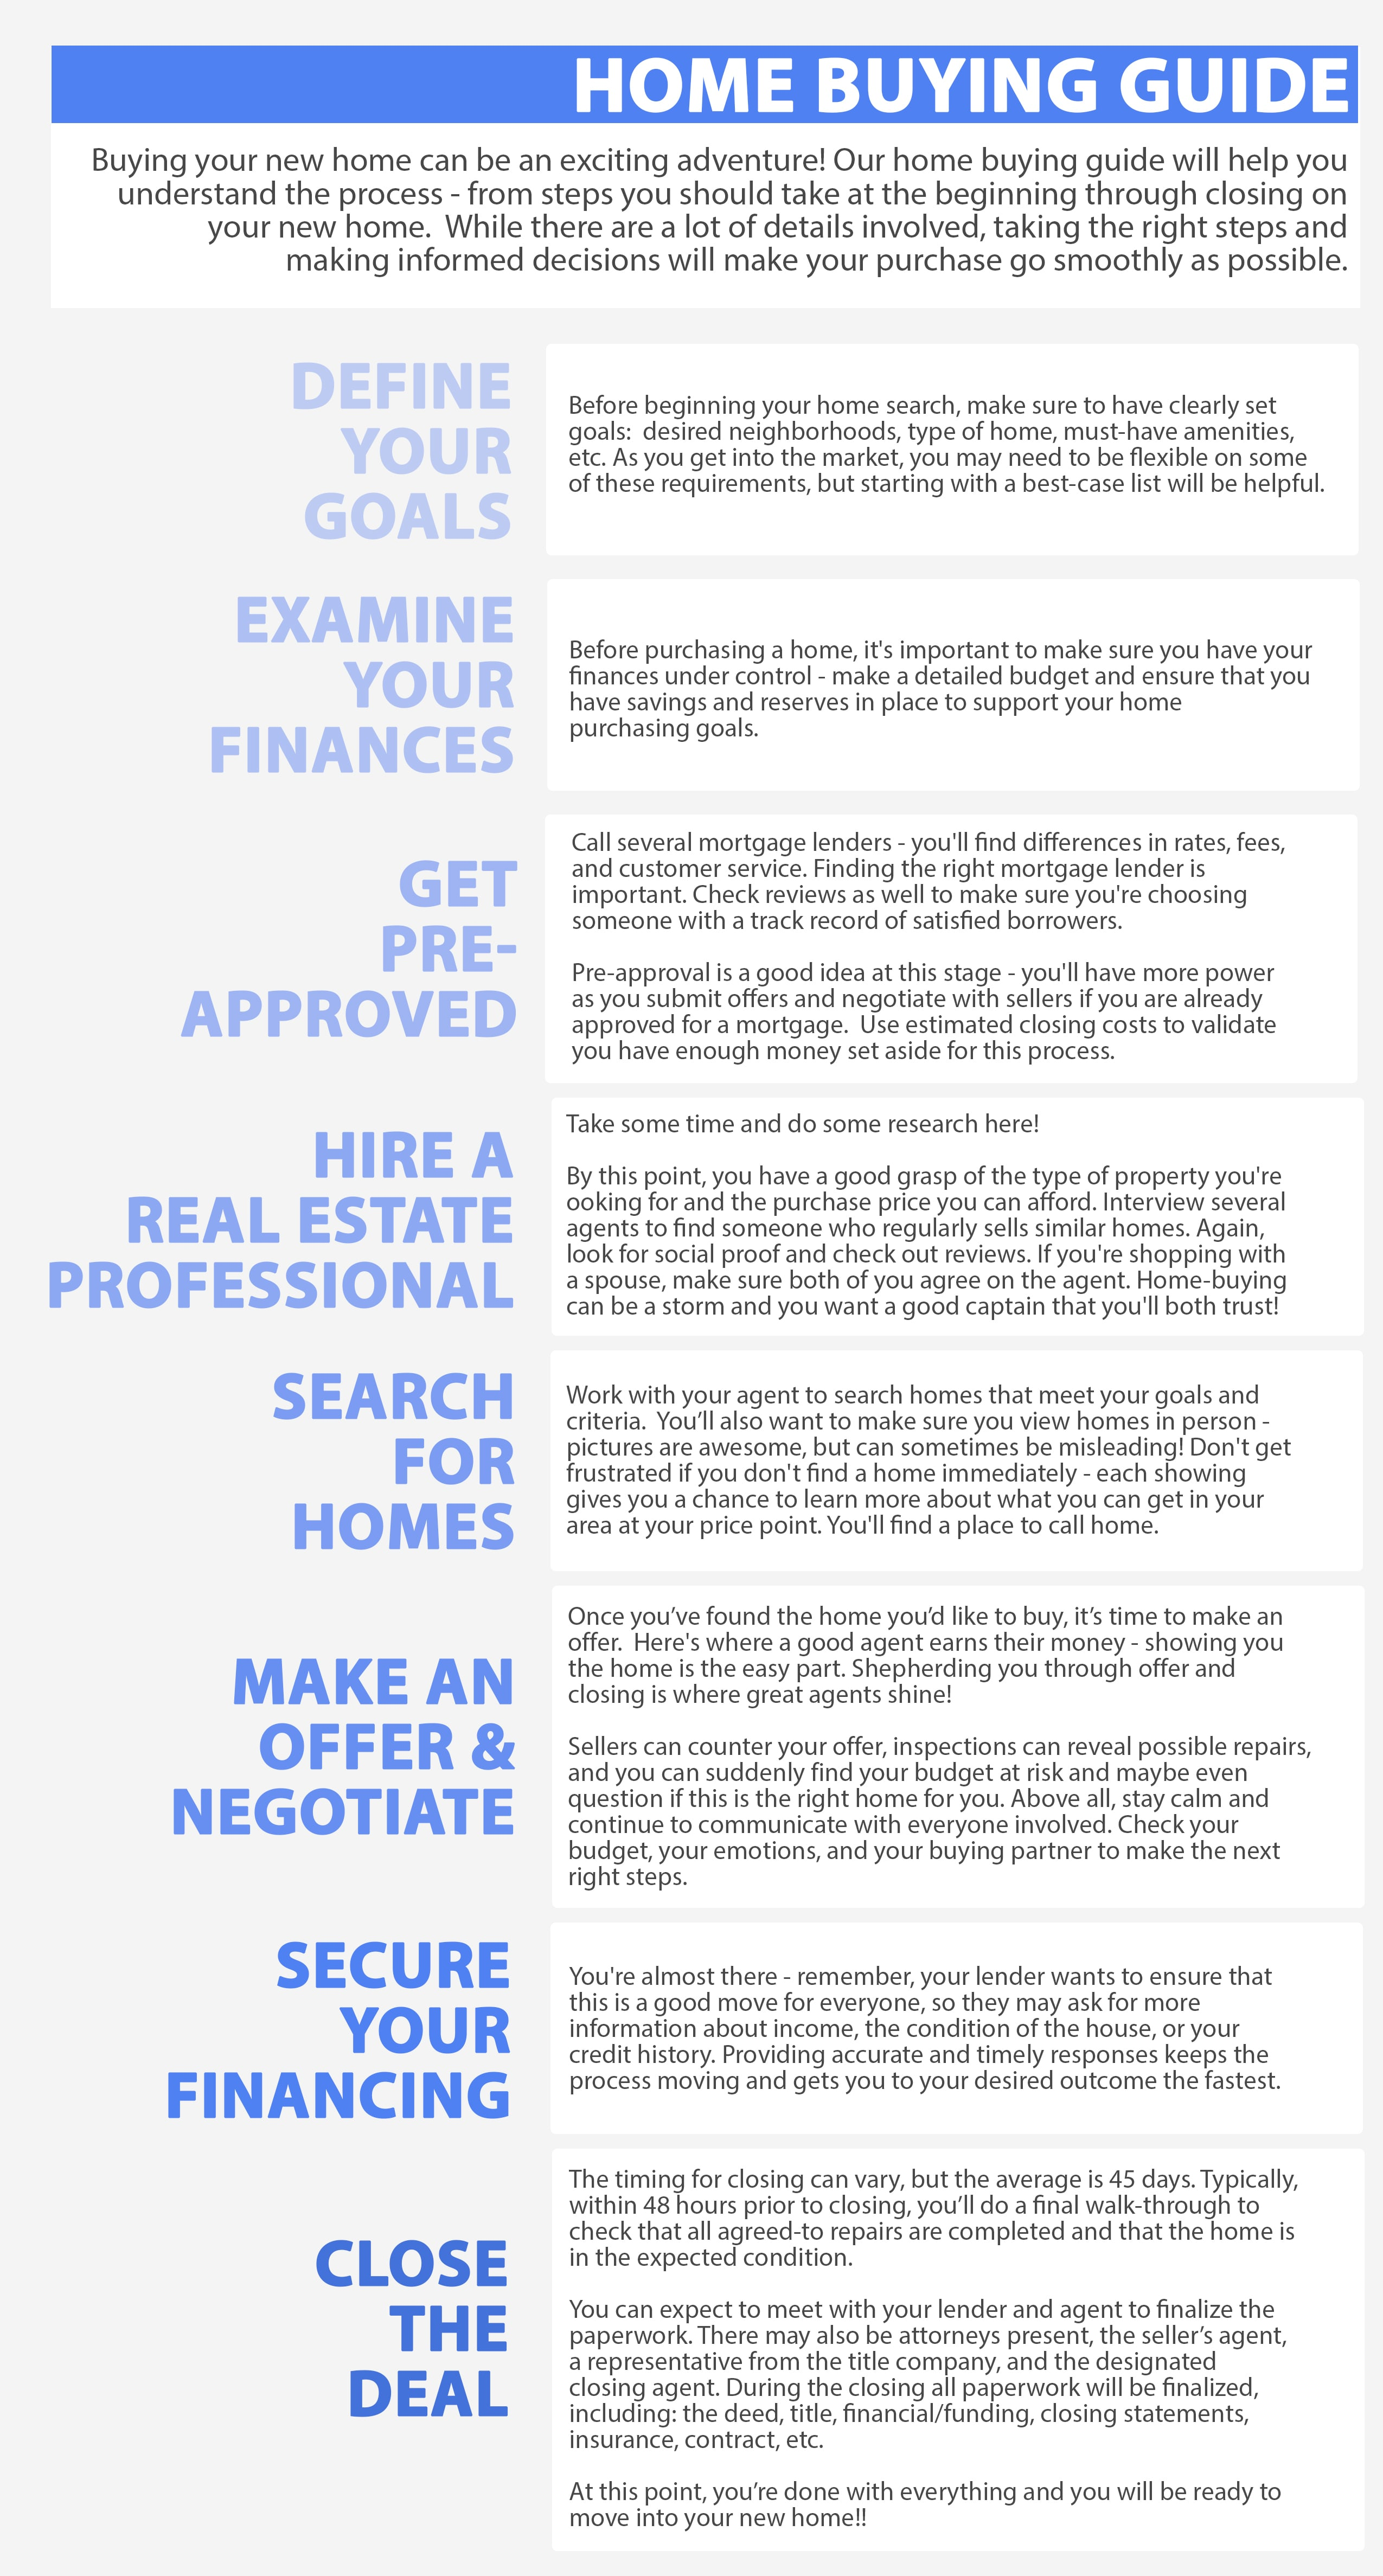 Home Buyer Guide Infographic